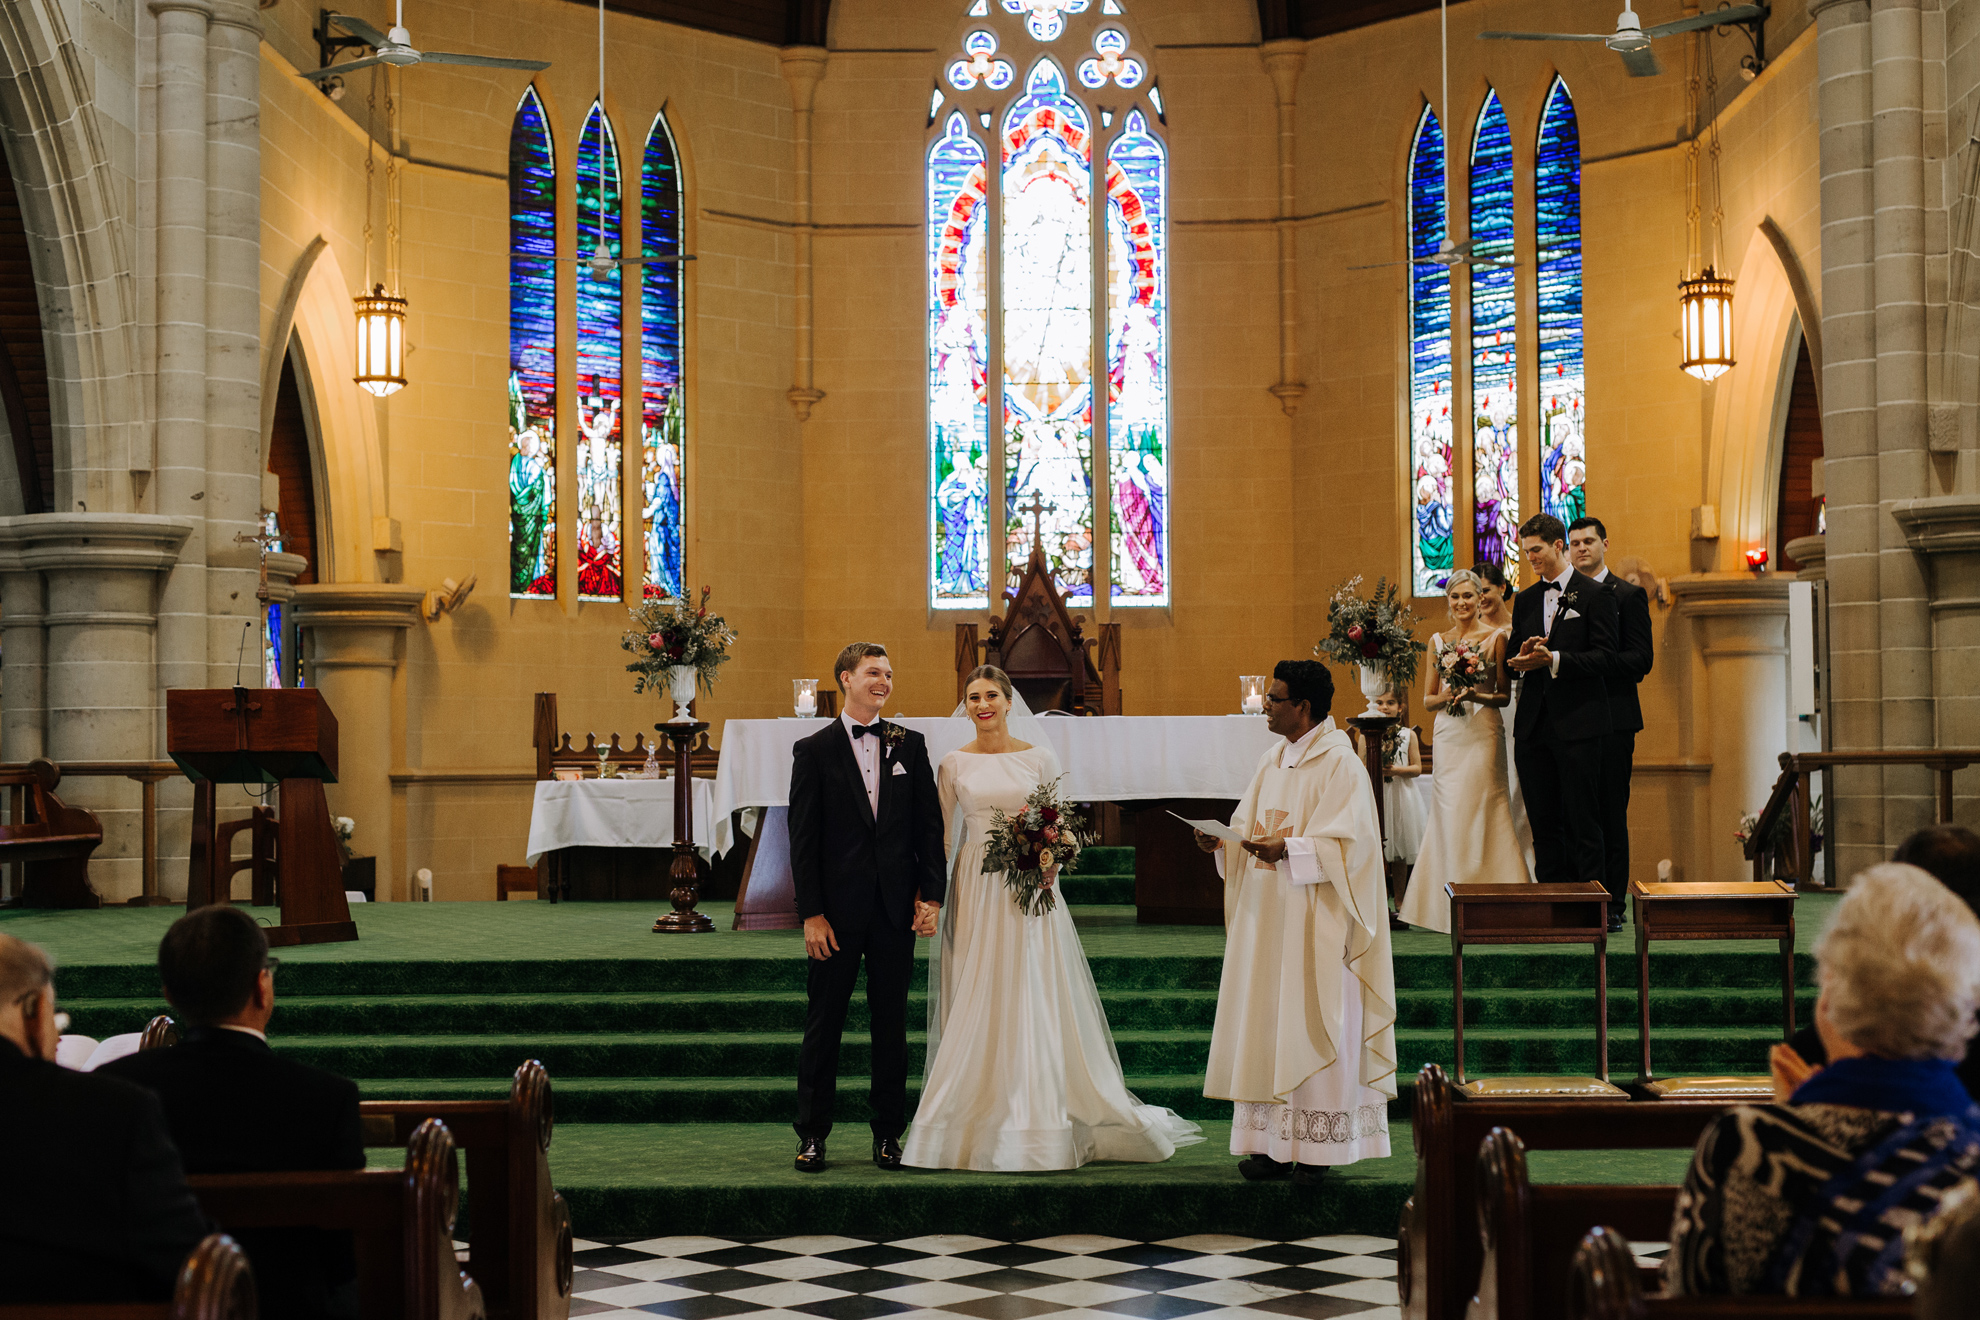 041-Chloe_Joe_Rockhampton_Wedding.jpg